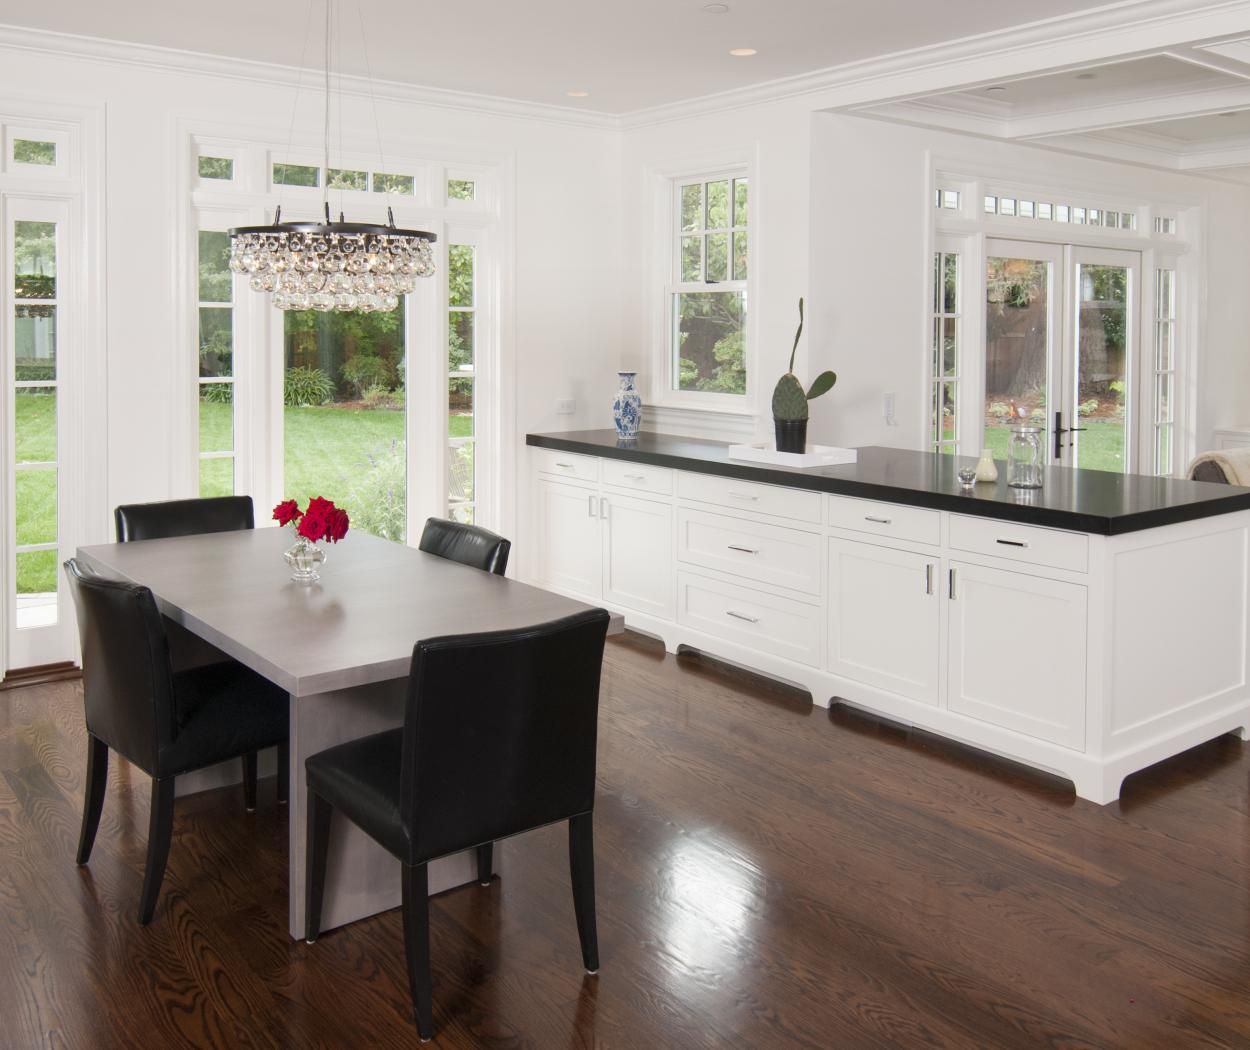 White Transitional, Shaker Style Dining Room Built-In with a Black Countertop and Chrome Hardware